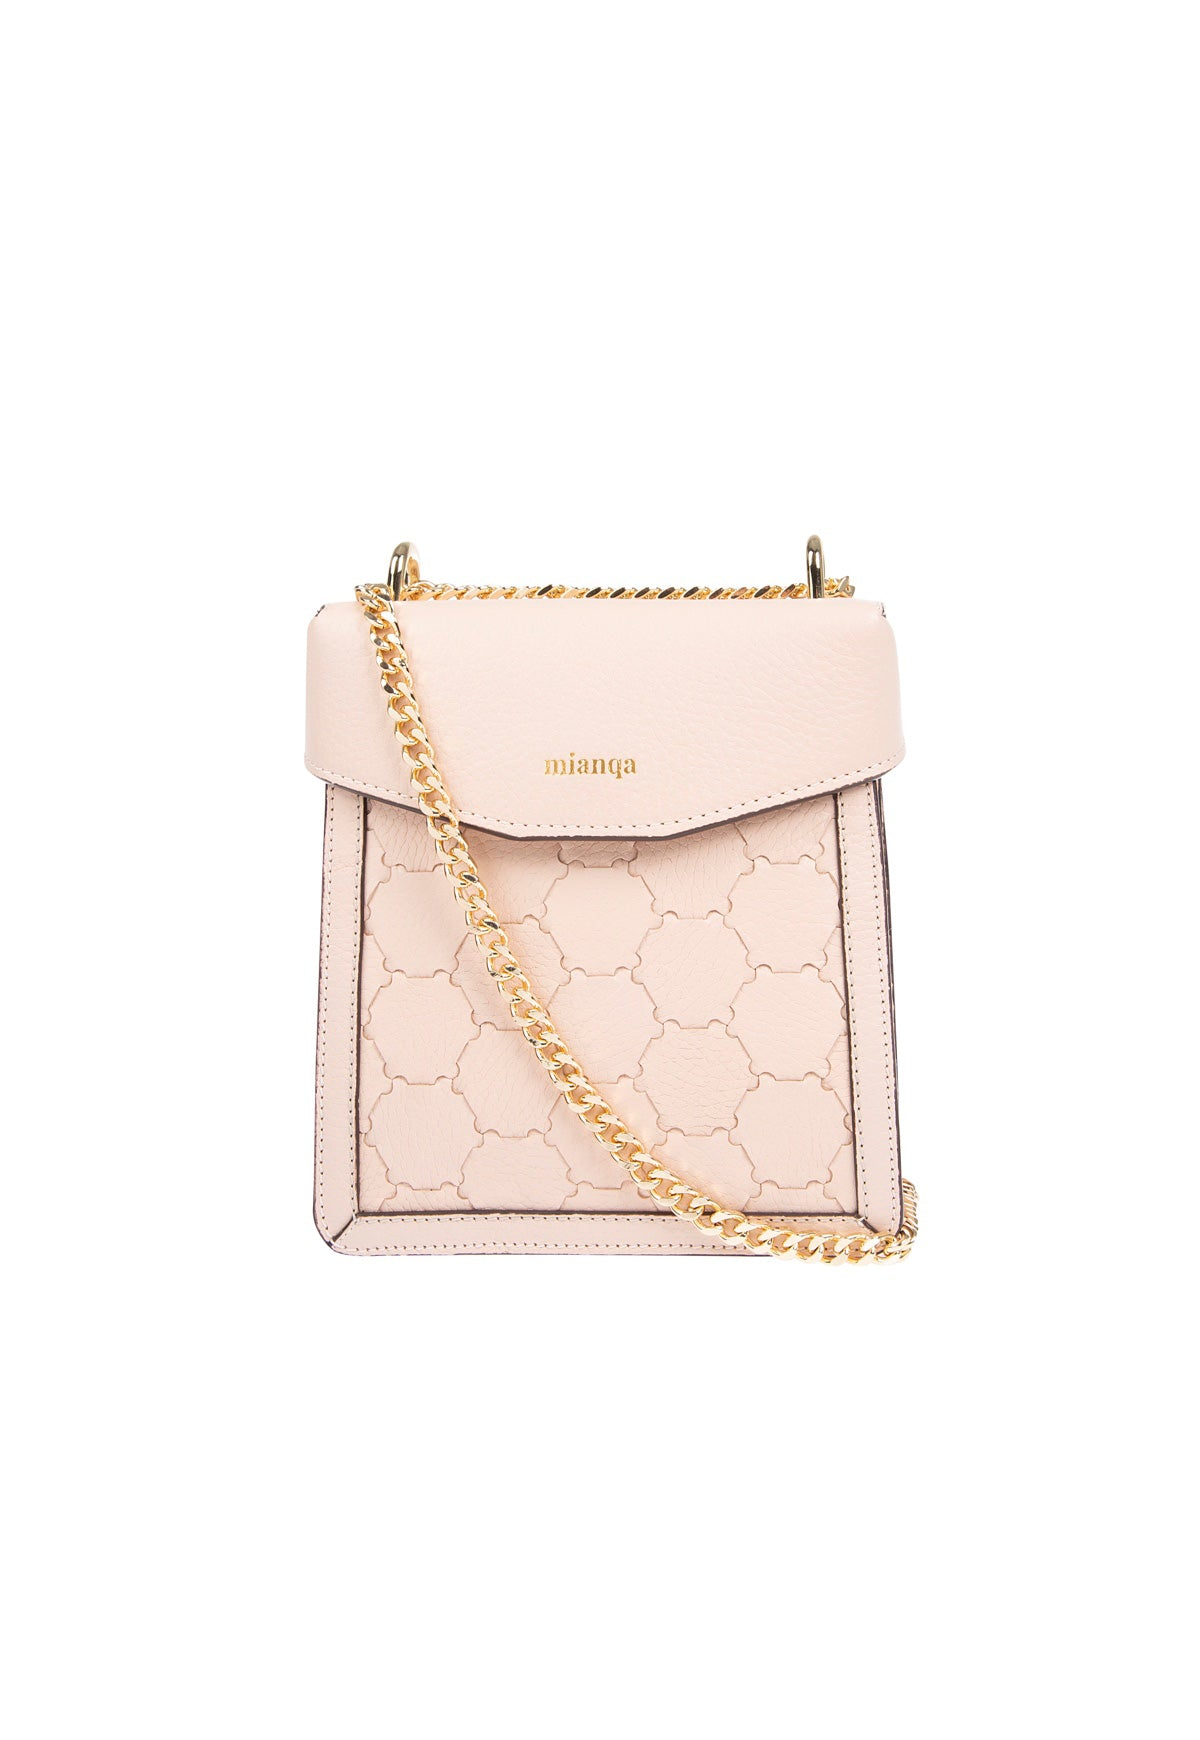 F U R E Y A | Leather Crossbody Bag Dust Pink